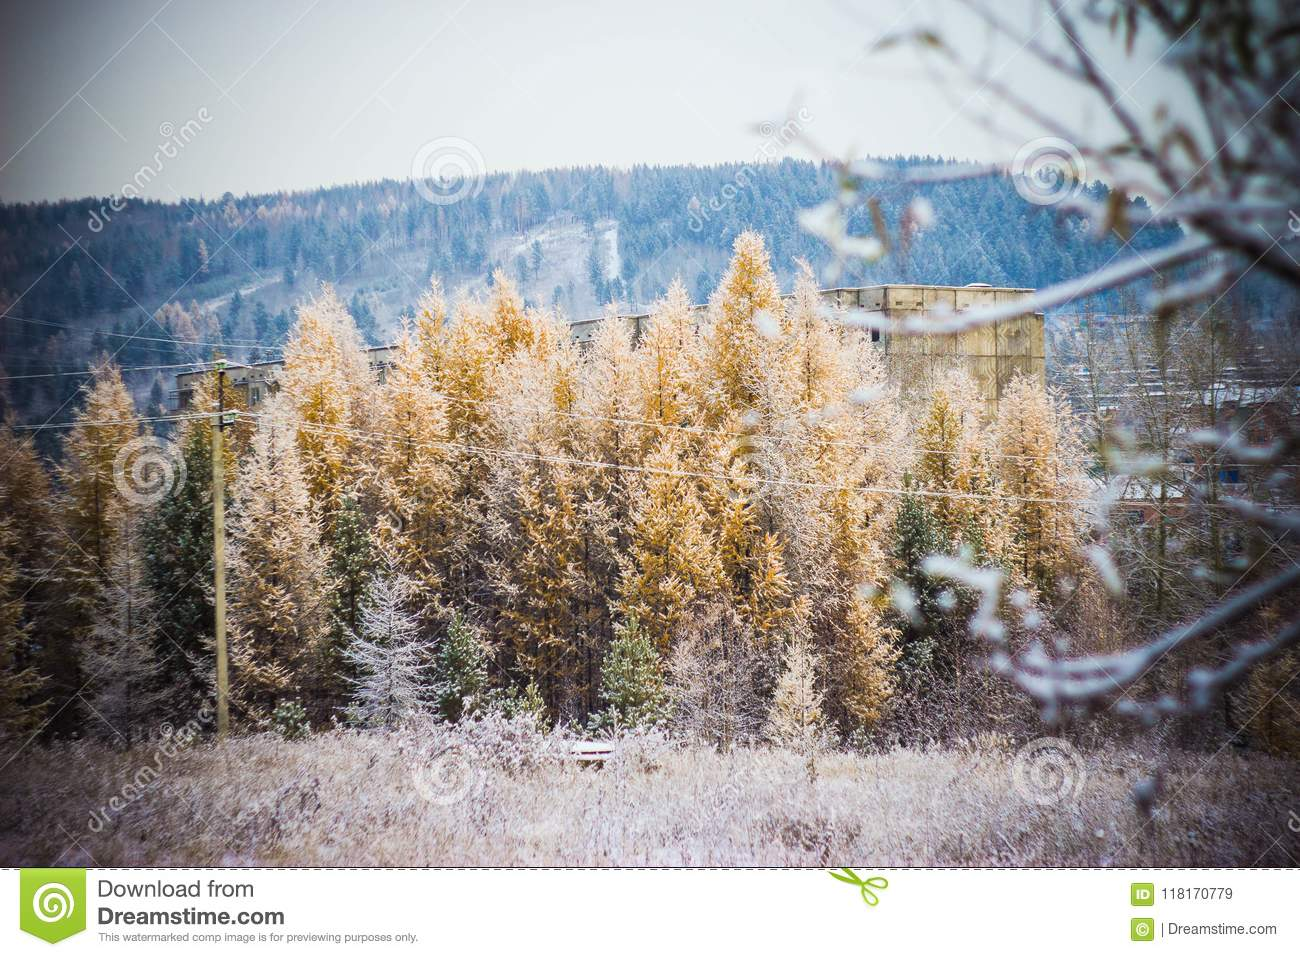 What will be the winter in Siberia in 2017-2018 77